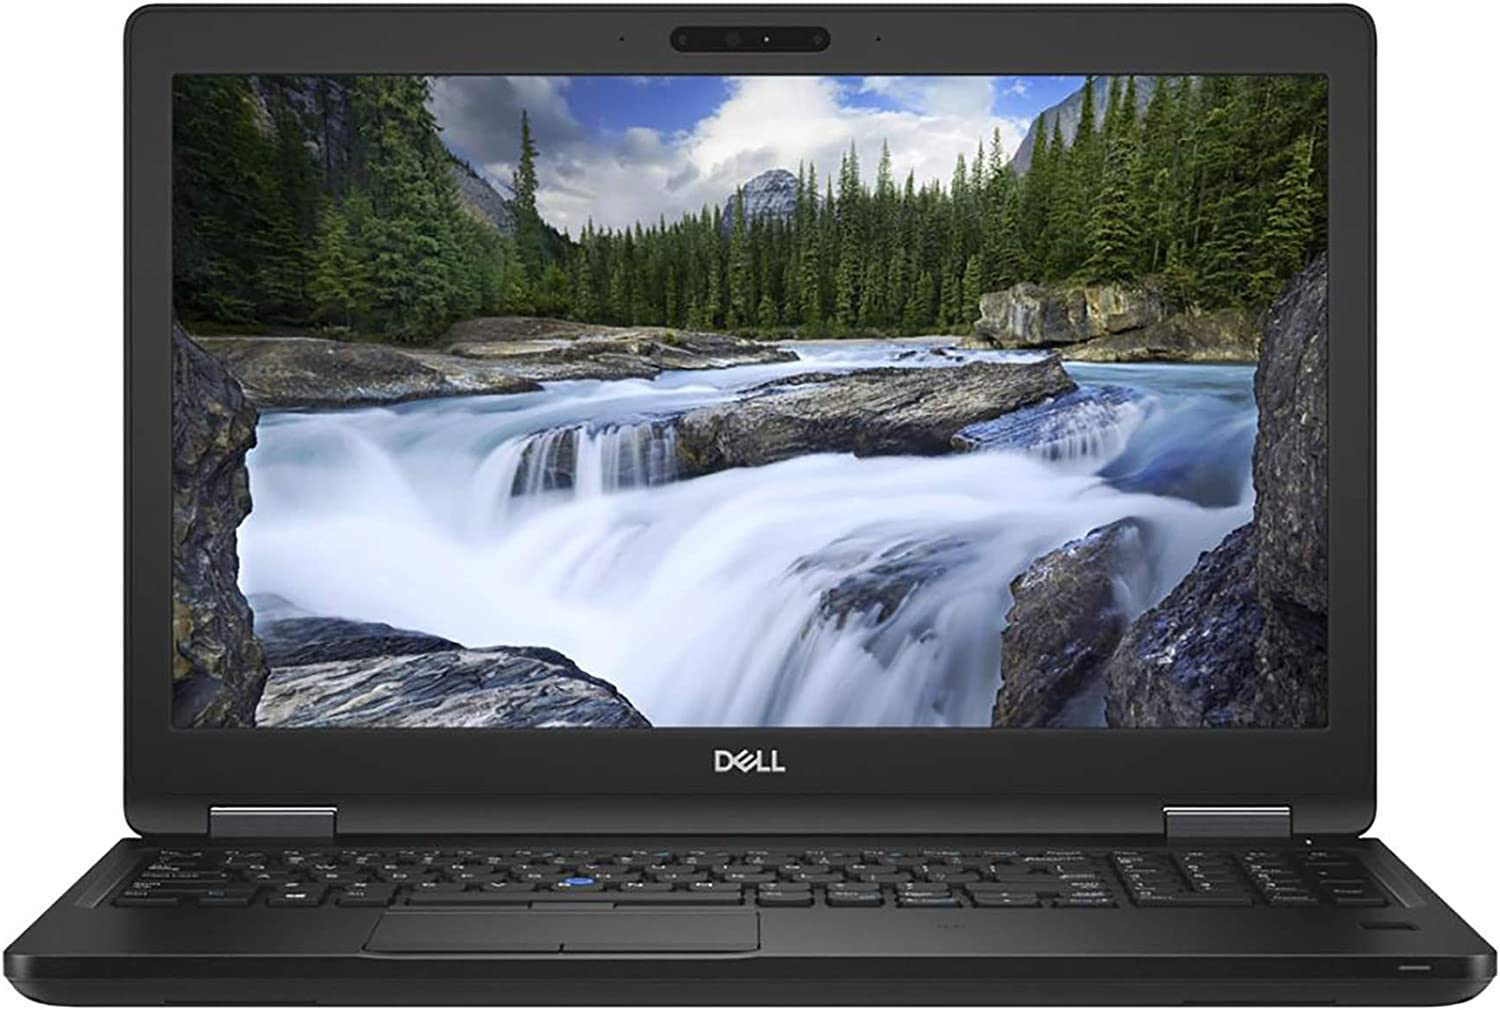 "Dell Latitude 5591 1920 x 1080 LCD Laptop with Intel Core i5-8400H 2.5 GHz Quad-Core, 8GB RAM, 256GB SSD, 15.6"" (VWWD9)"